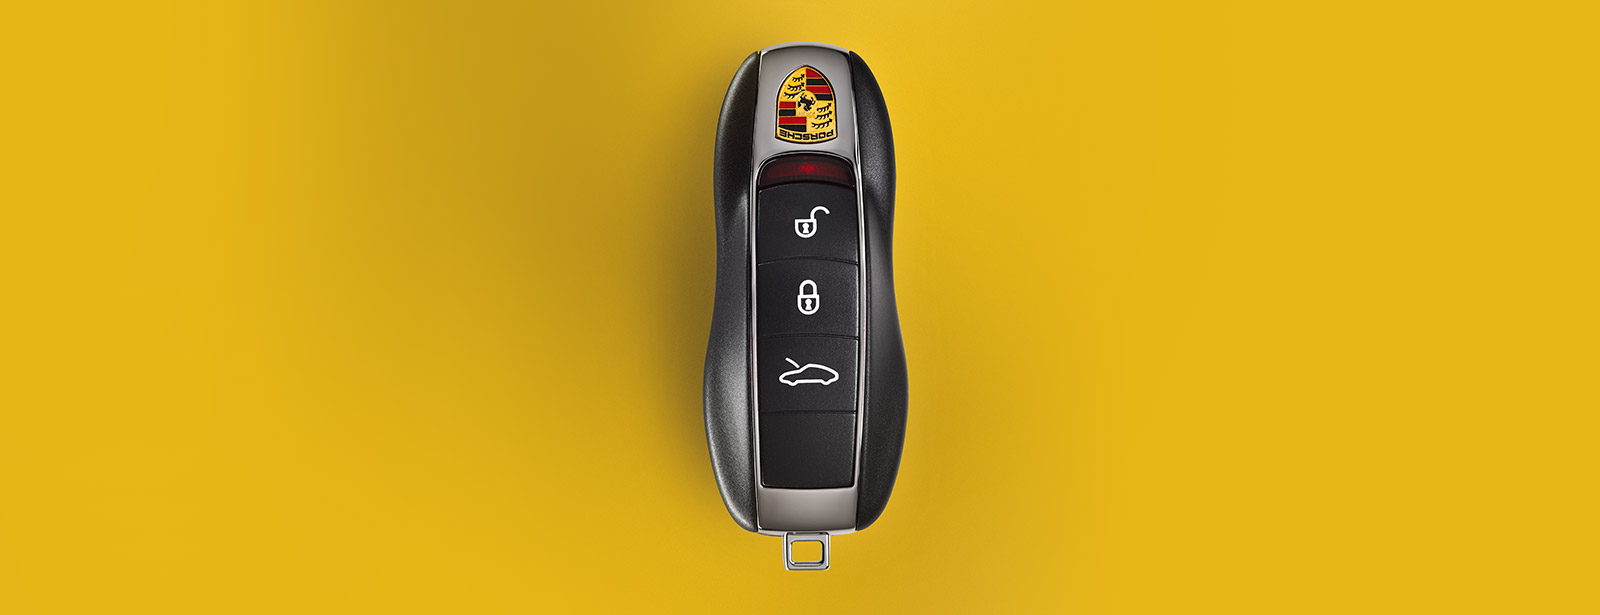 Porsche Replacement Car Keys Anywhere In Ireland